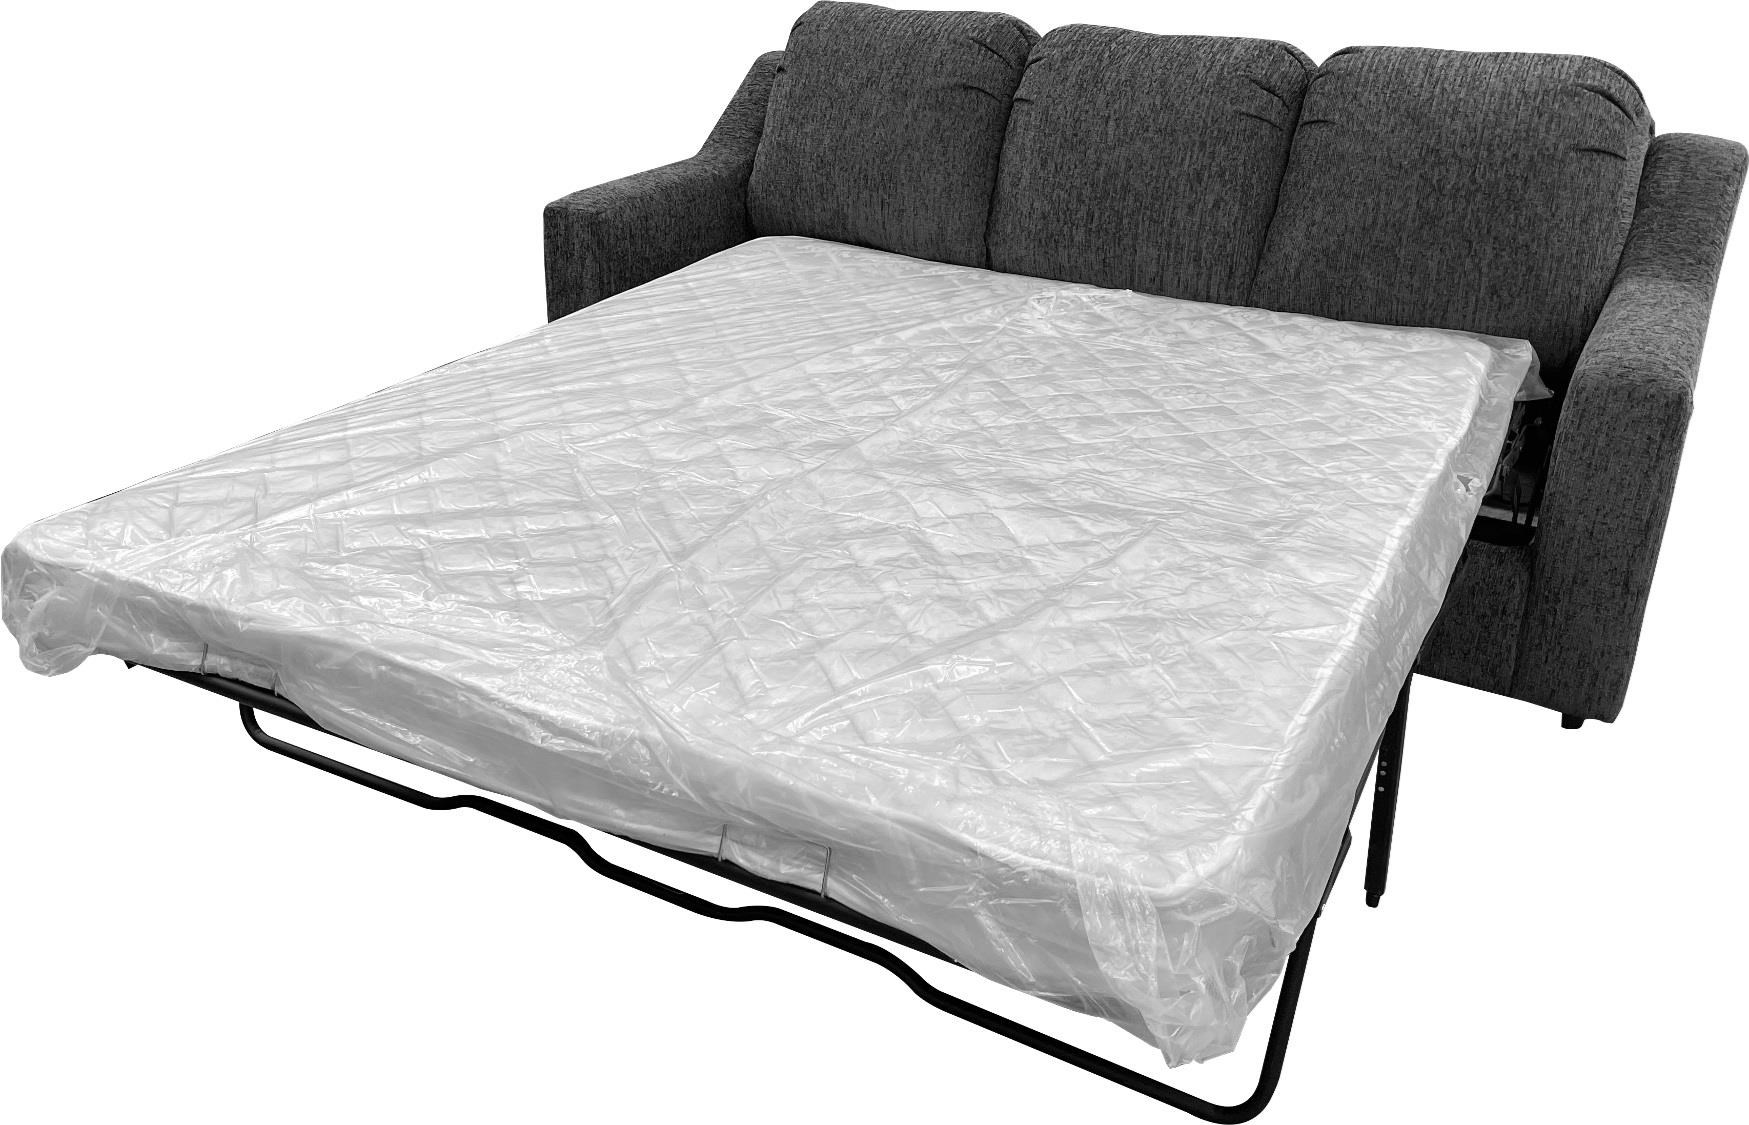 150 Queen Sleeper Oympus Charcoal by Phoenix Custom Furniture at Del Sol Furniture